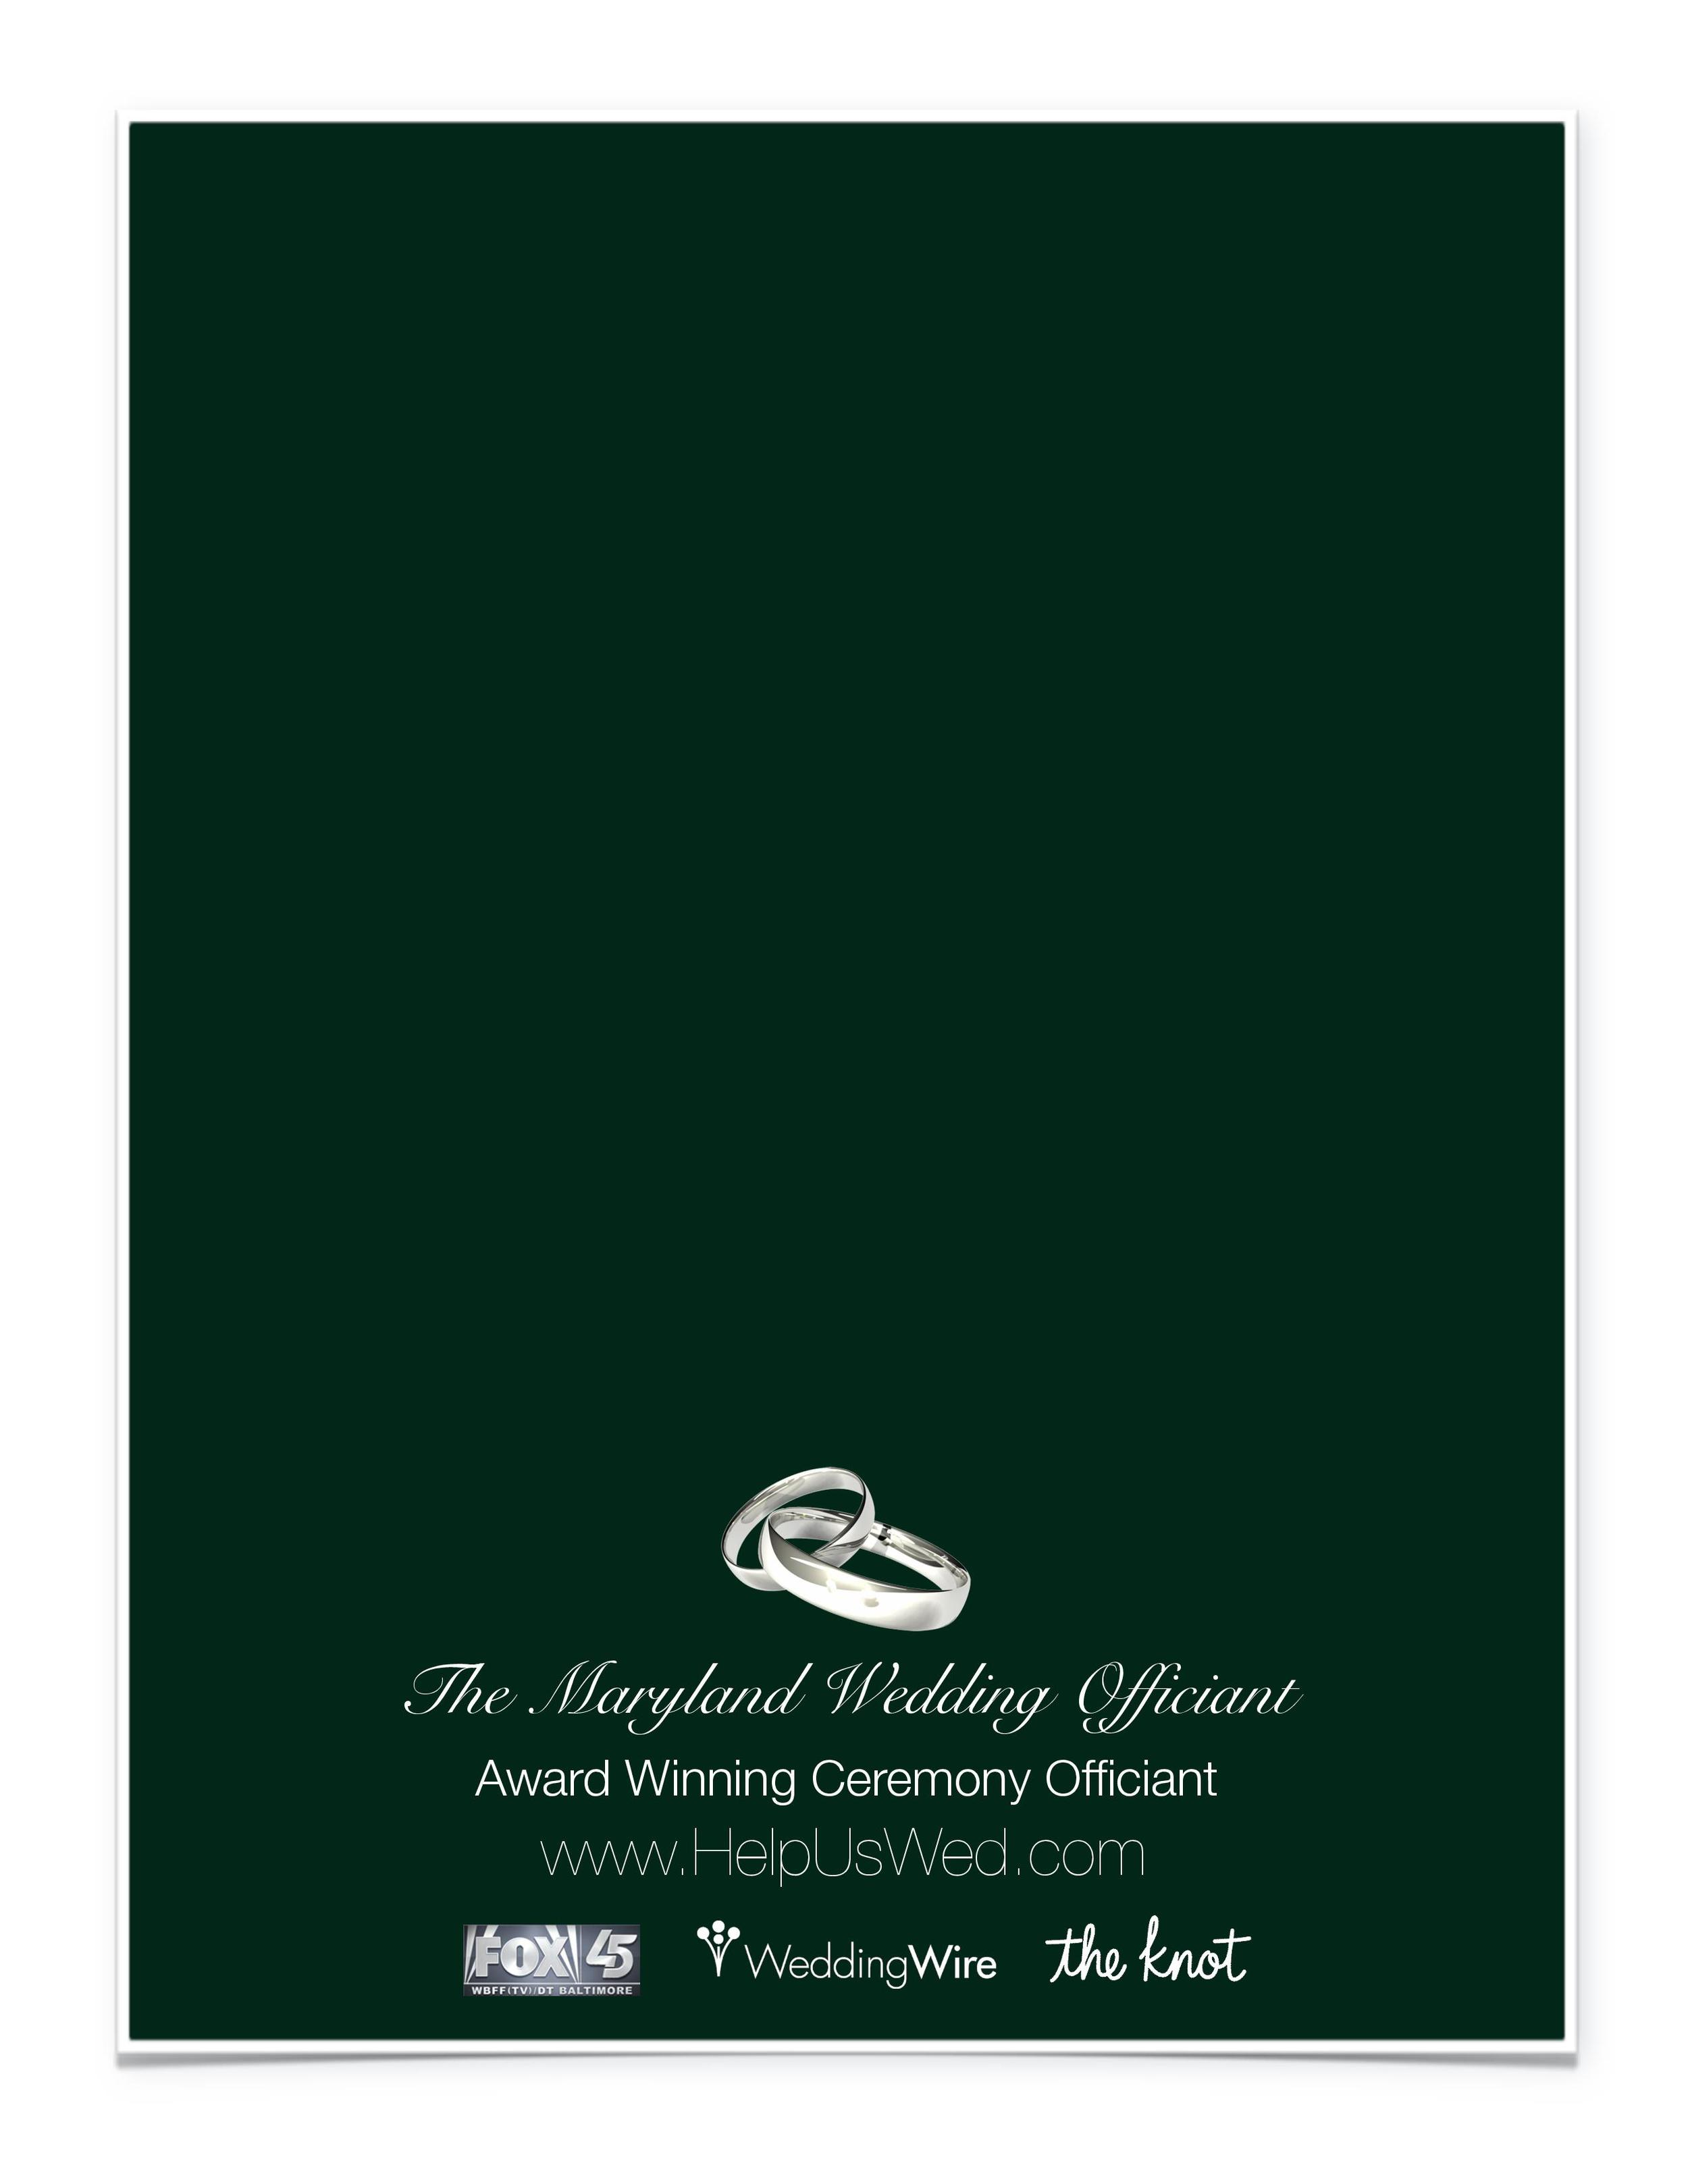 Ceremony Templates Sneak Peek-page-005.jpg